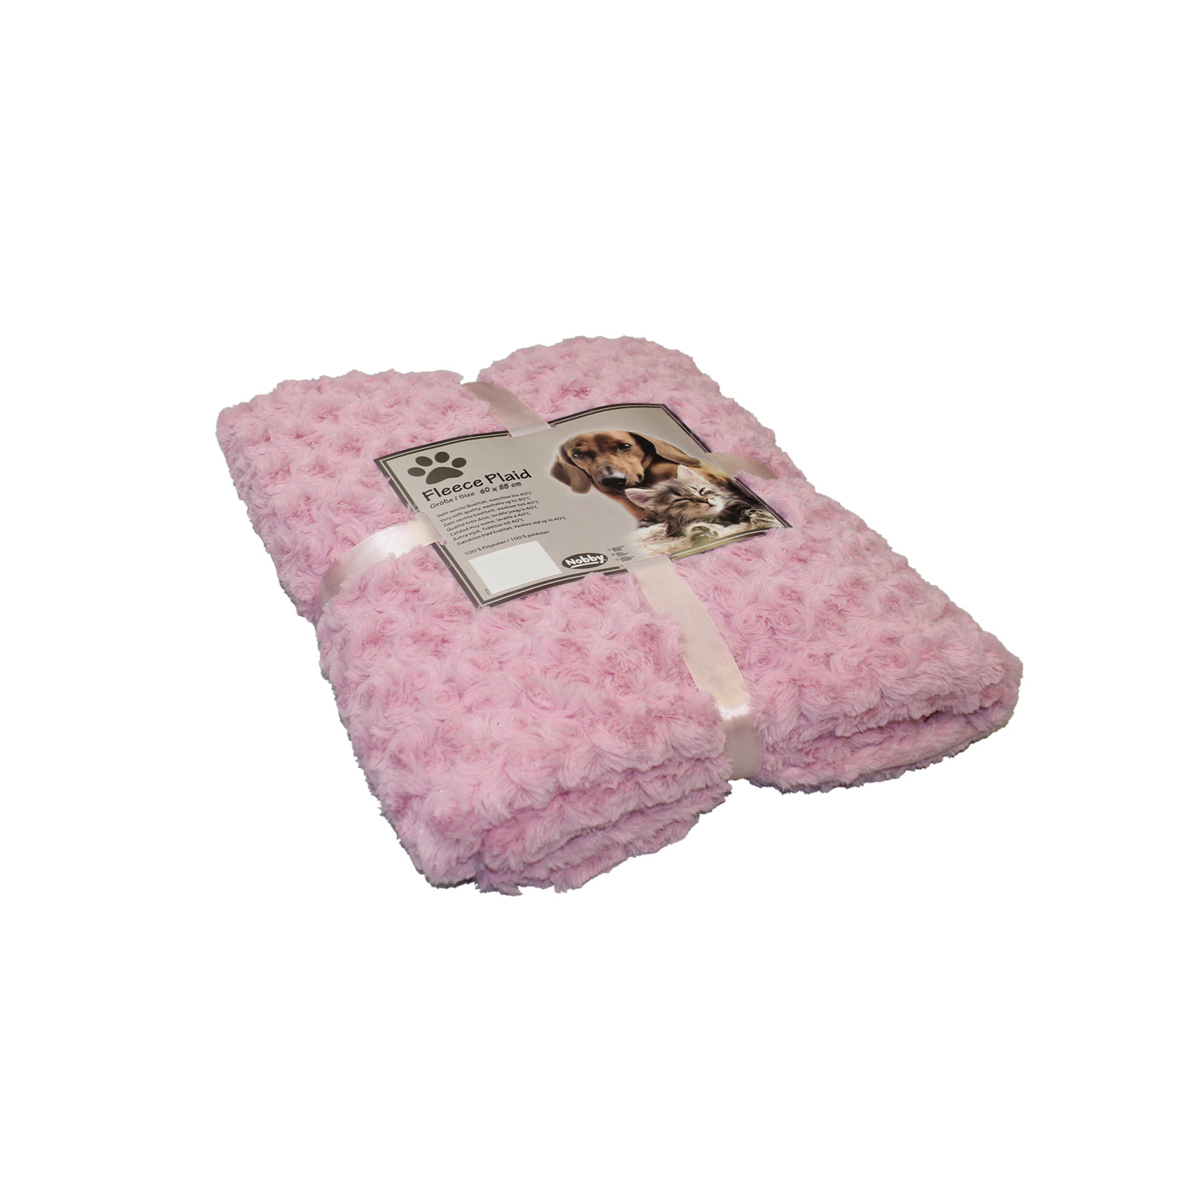 NB DEKEN FLEECE ROZE 60X85 00001